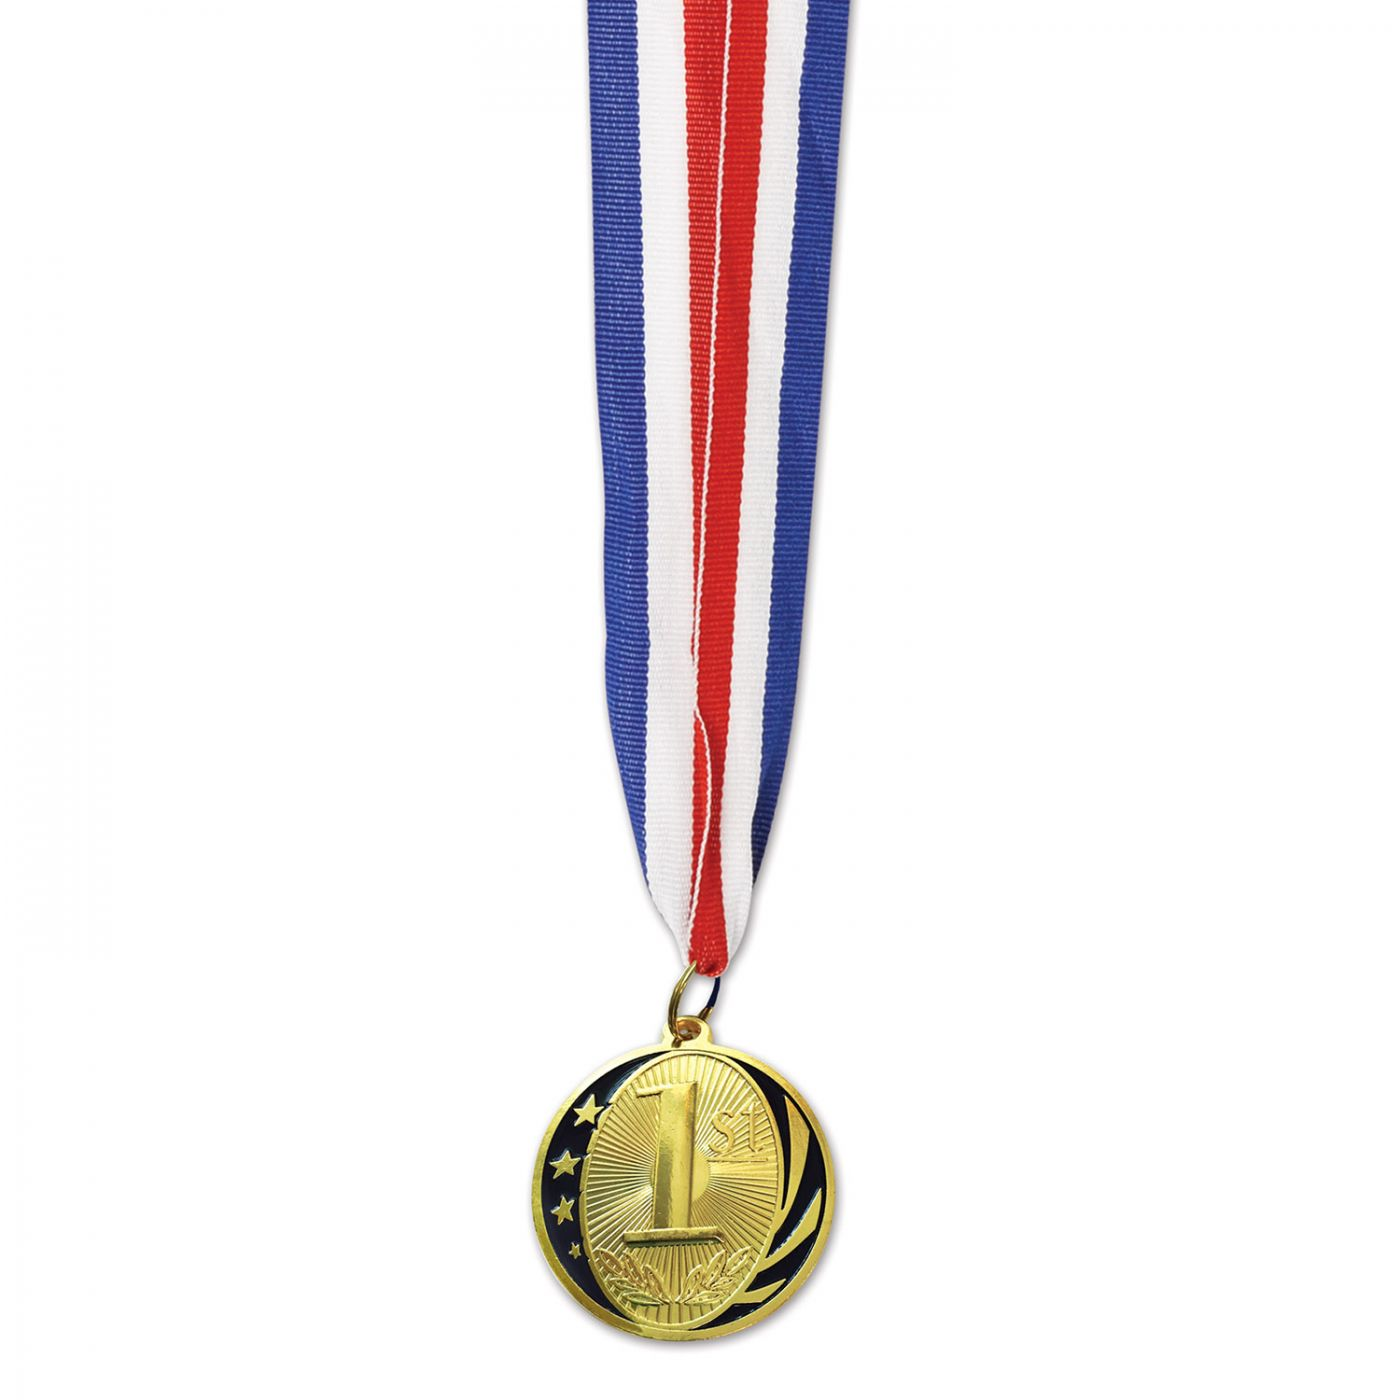 Image of 1st Place Medal w/Ribbon